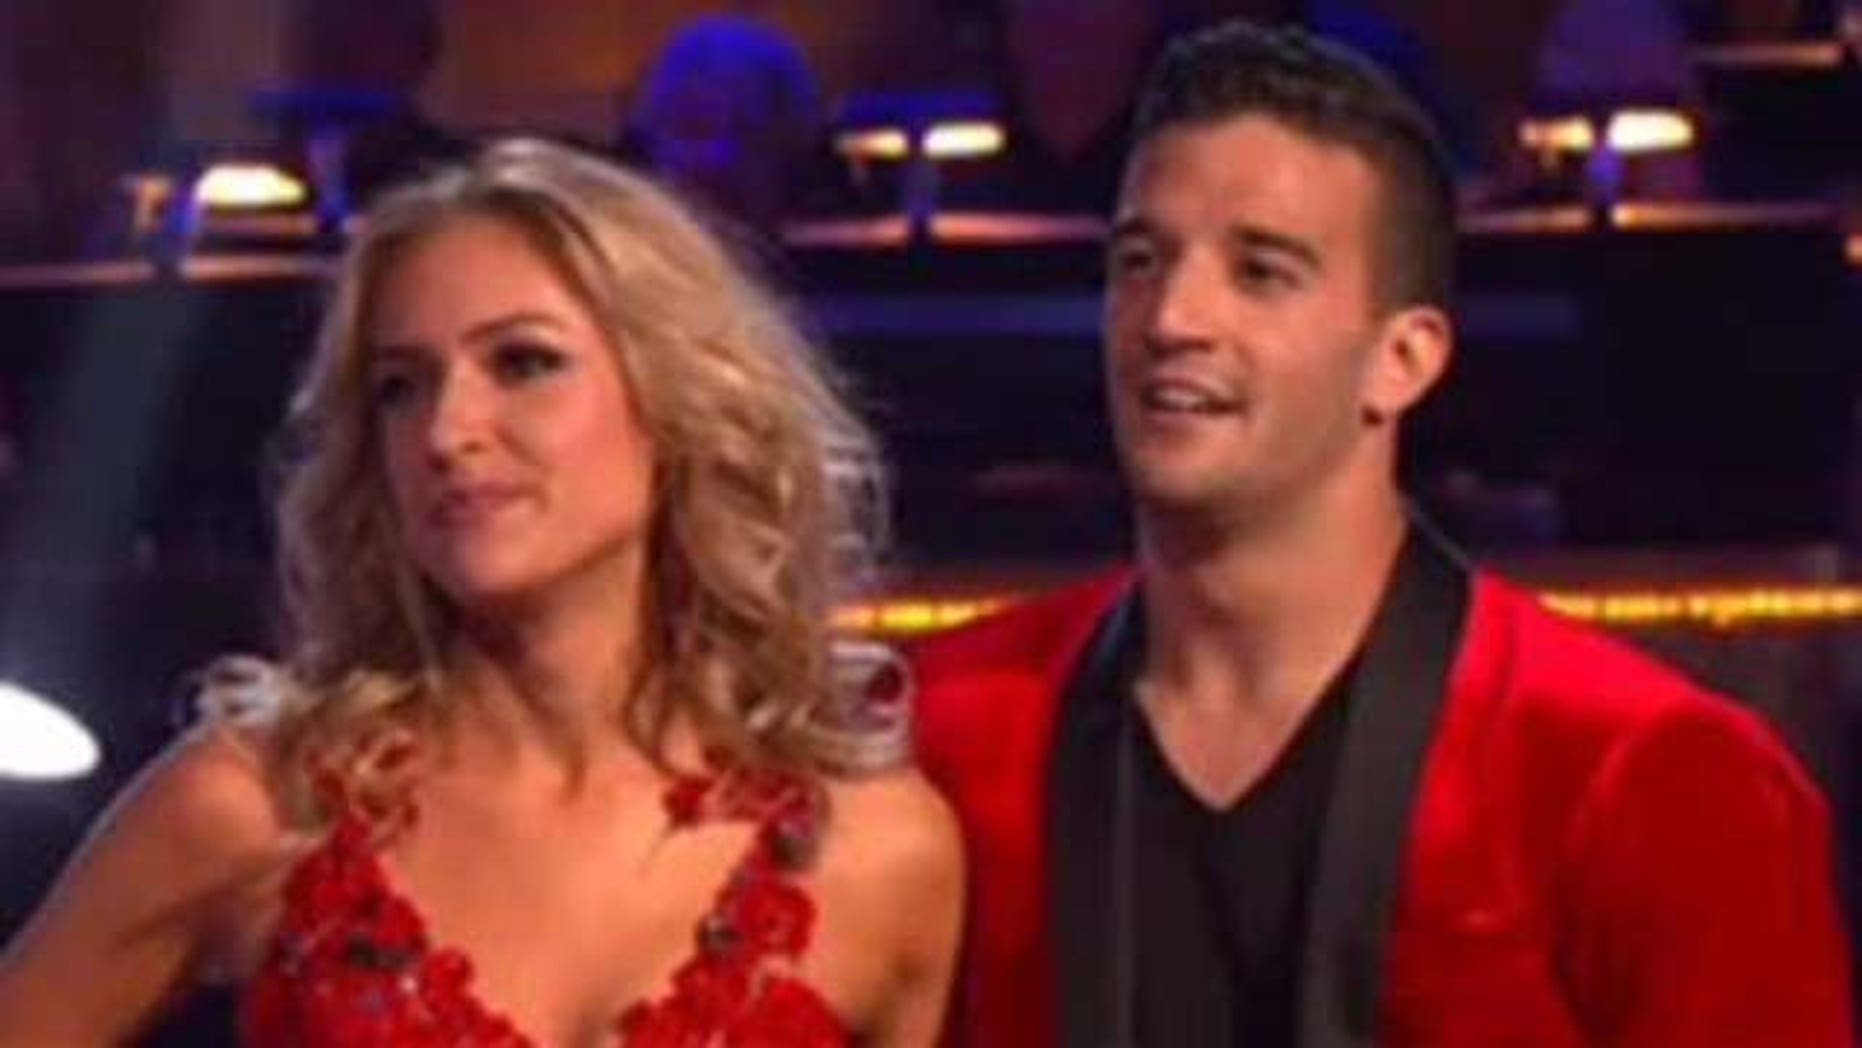 Oct. 4, 2011: Reality star Kristin Cavallari and Mark Ballas are eliminated from Dancing With the Stars on Tuesday night.